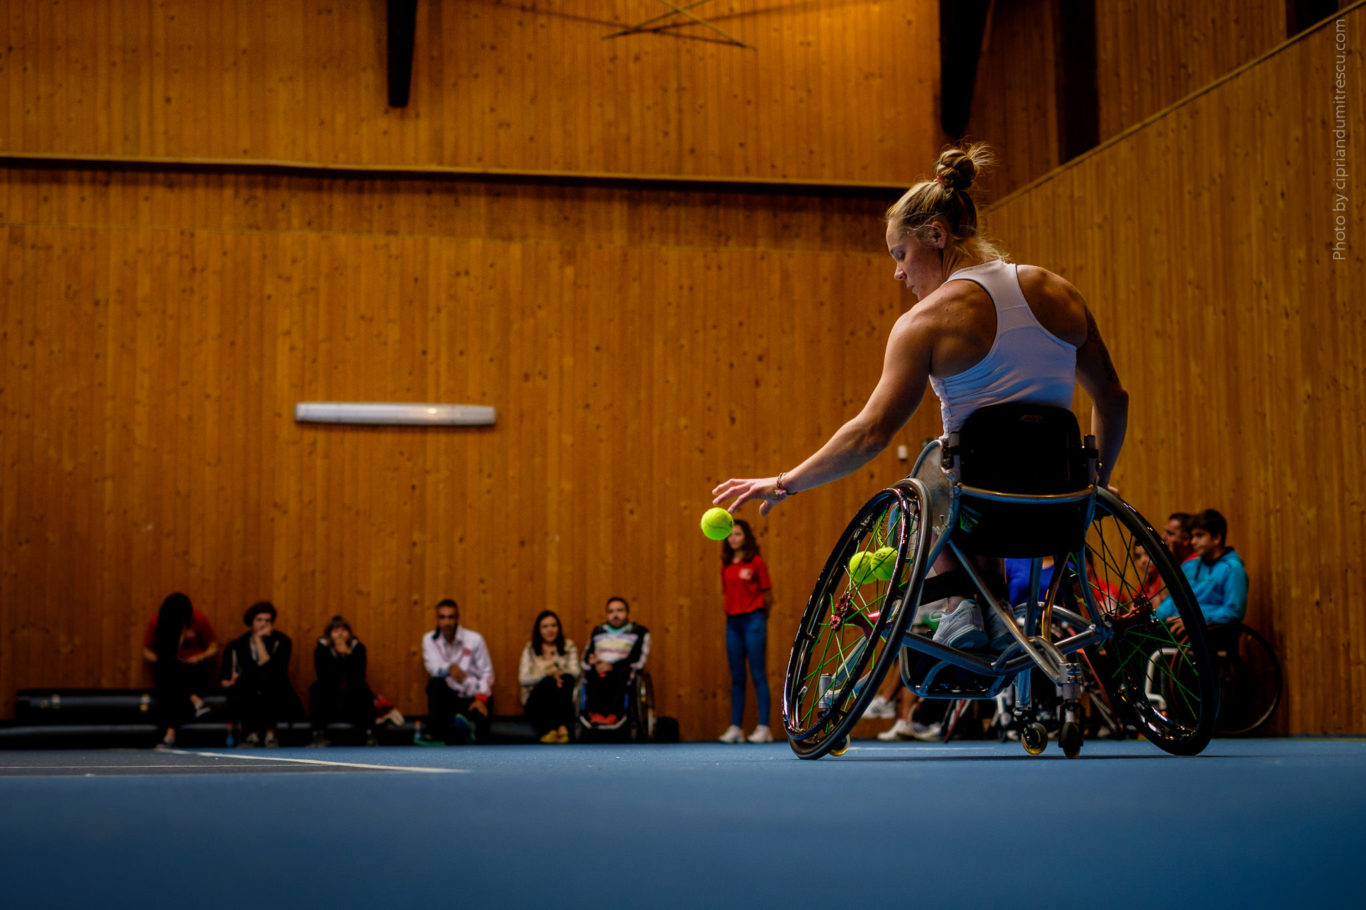 026-Bucharest-Open-Wheelchair-2016-Day-One-Photographer-Ciprian-Dumitrescu